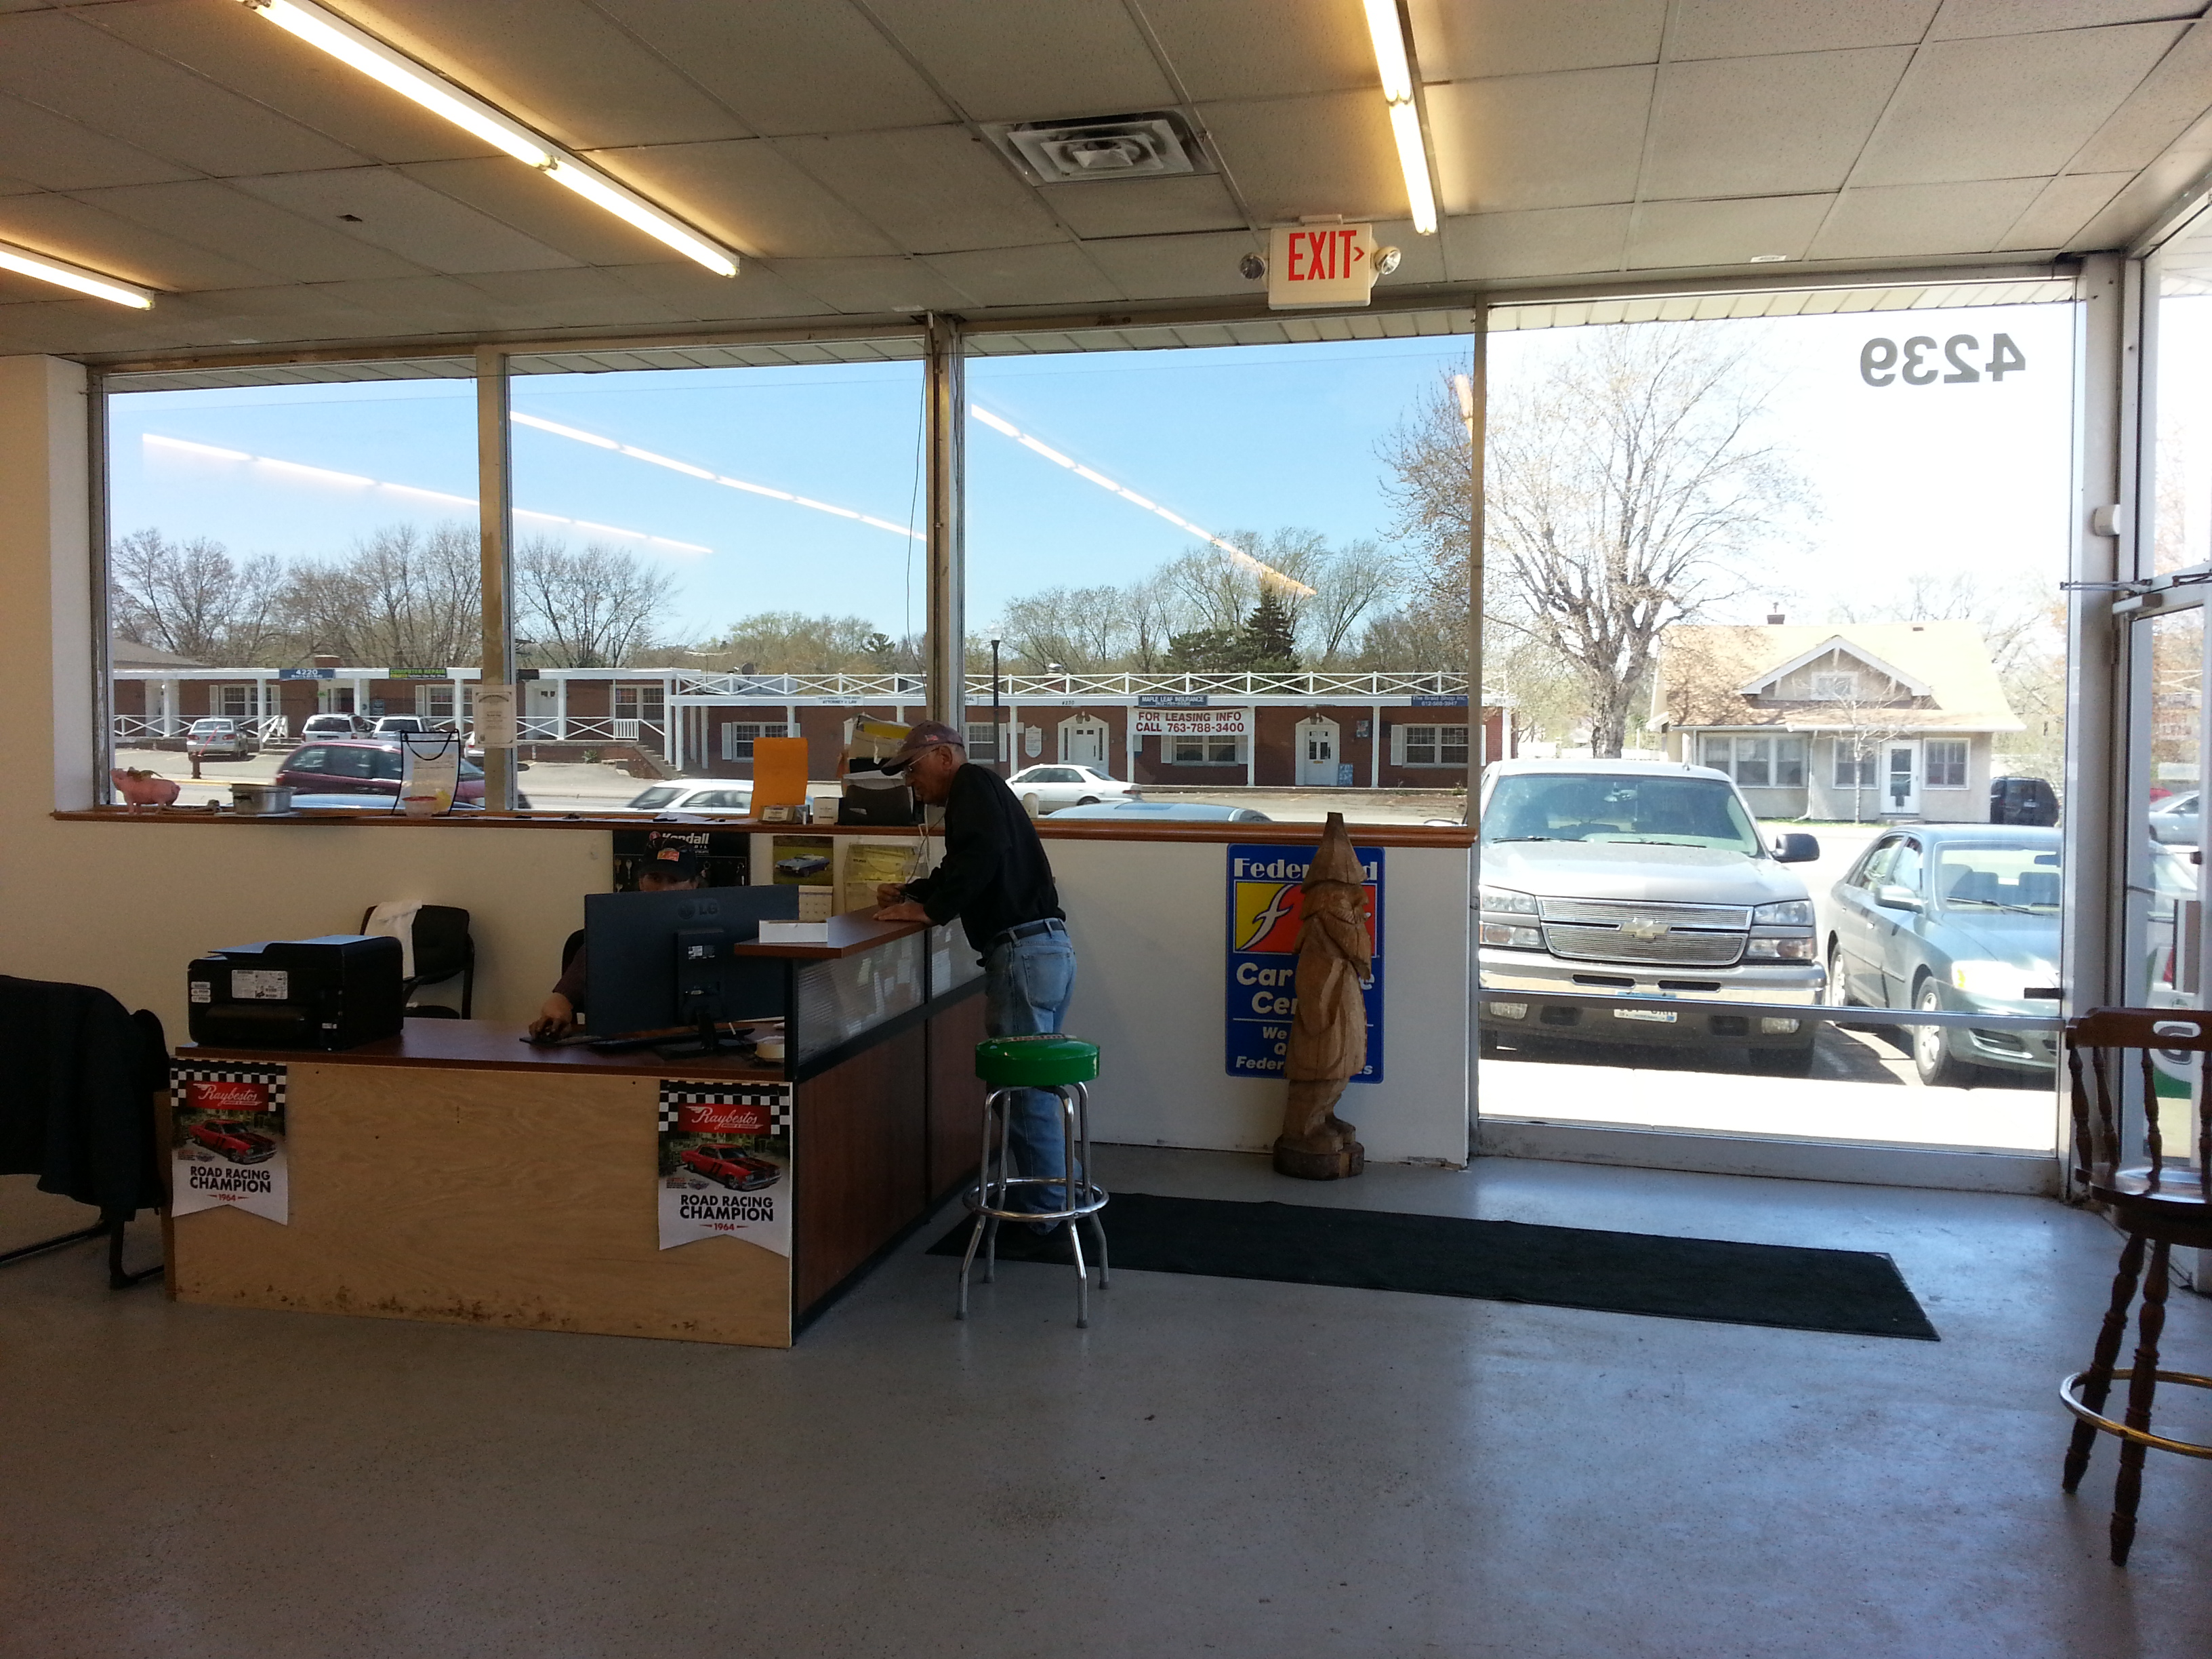 Window Tinting Mn >> Office Window Tinting Essential for Glare Reduction in the Twin Cities, MN